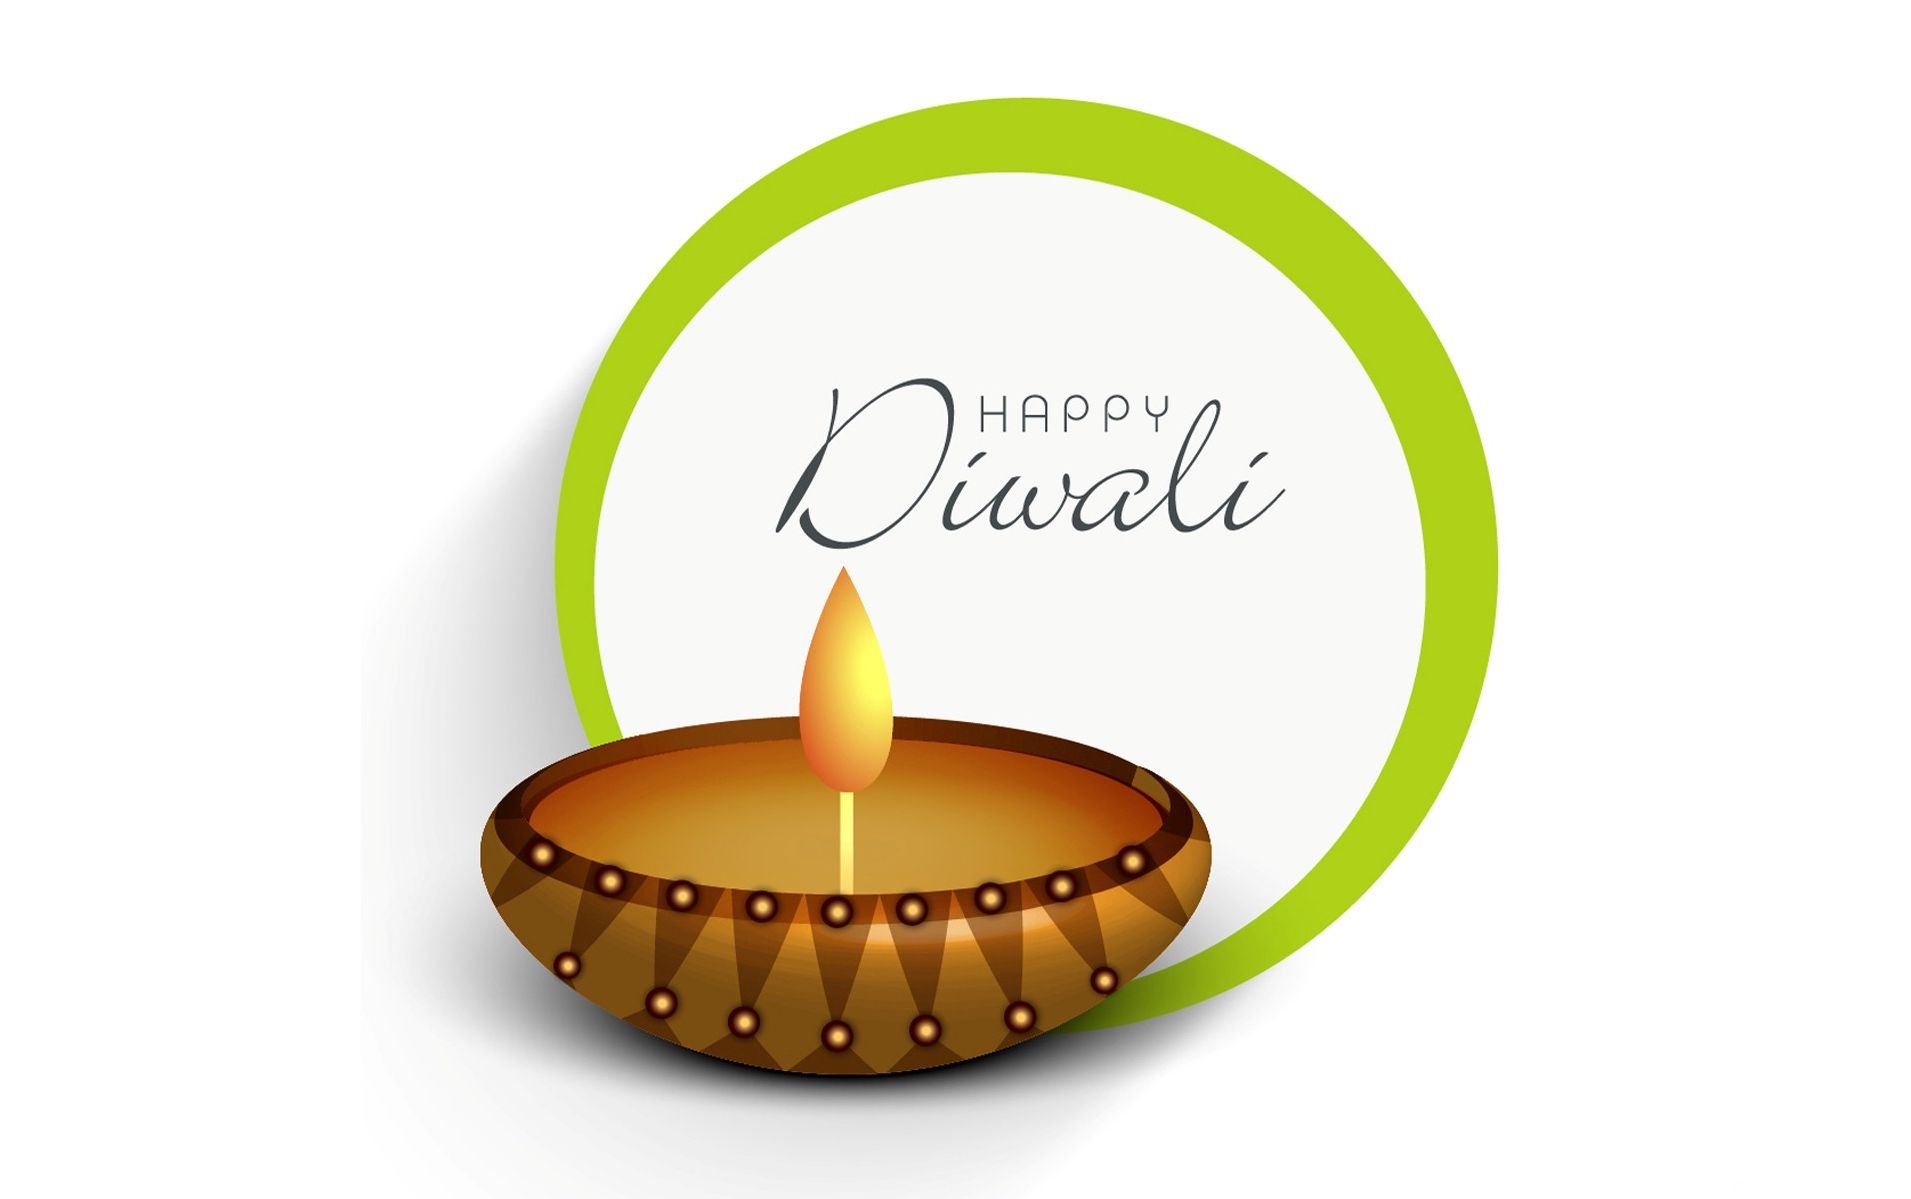 HD Happy Diwali Desktop Background Image